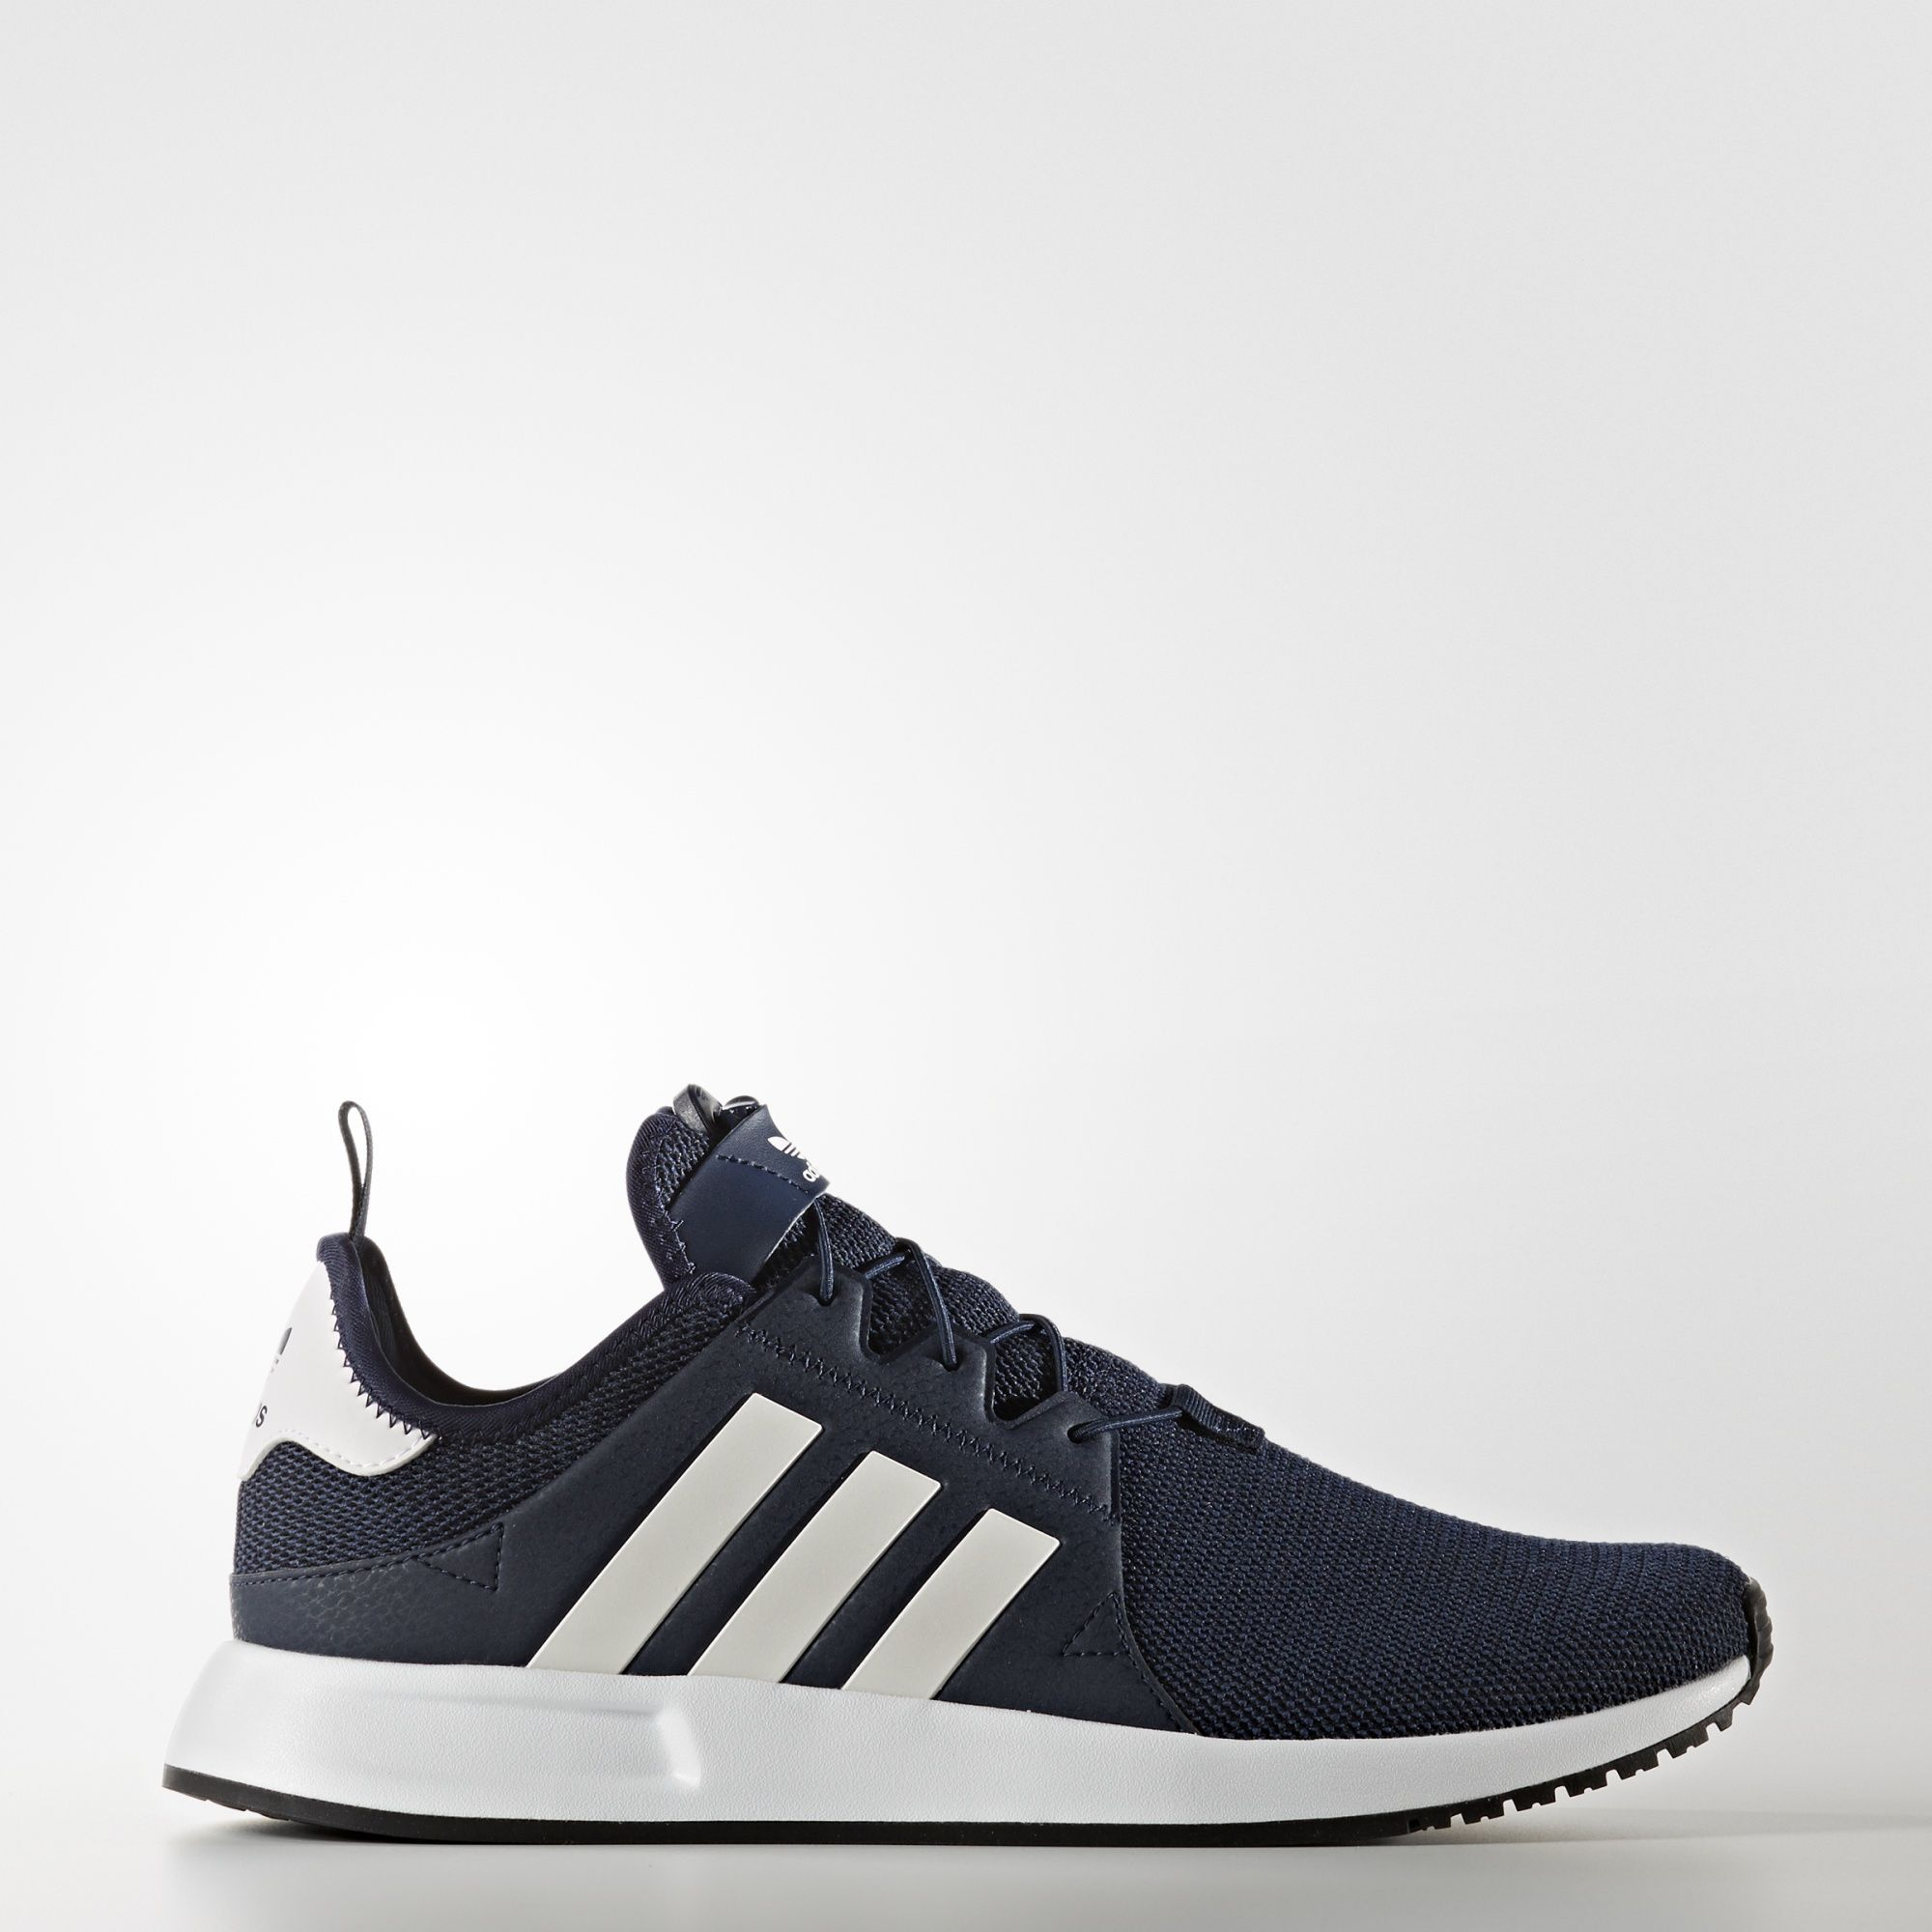 adidas – Men's X_PLR Shoes Collegiate Navy/Footwear White/Core Black BB1109